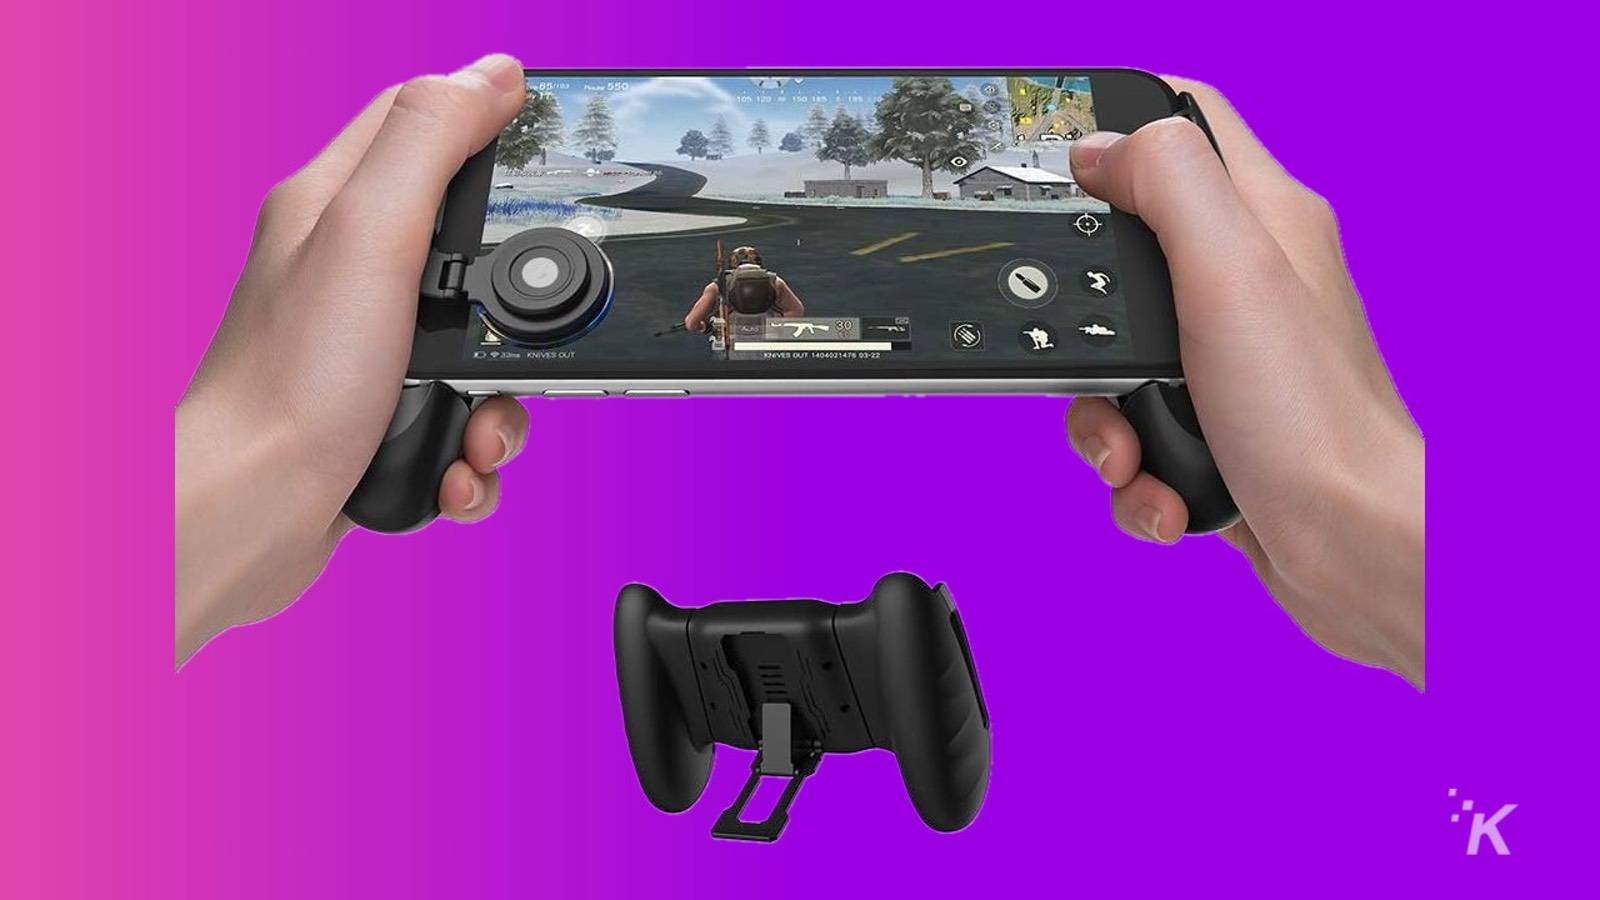 gamesfit f1 grip android mobile gaming controller